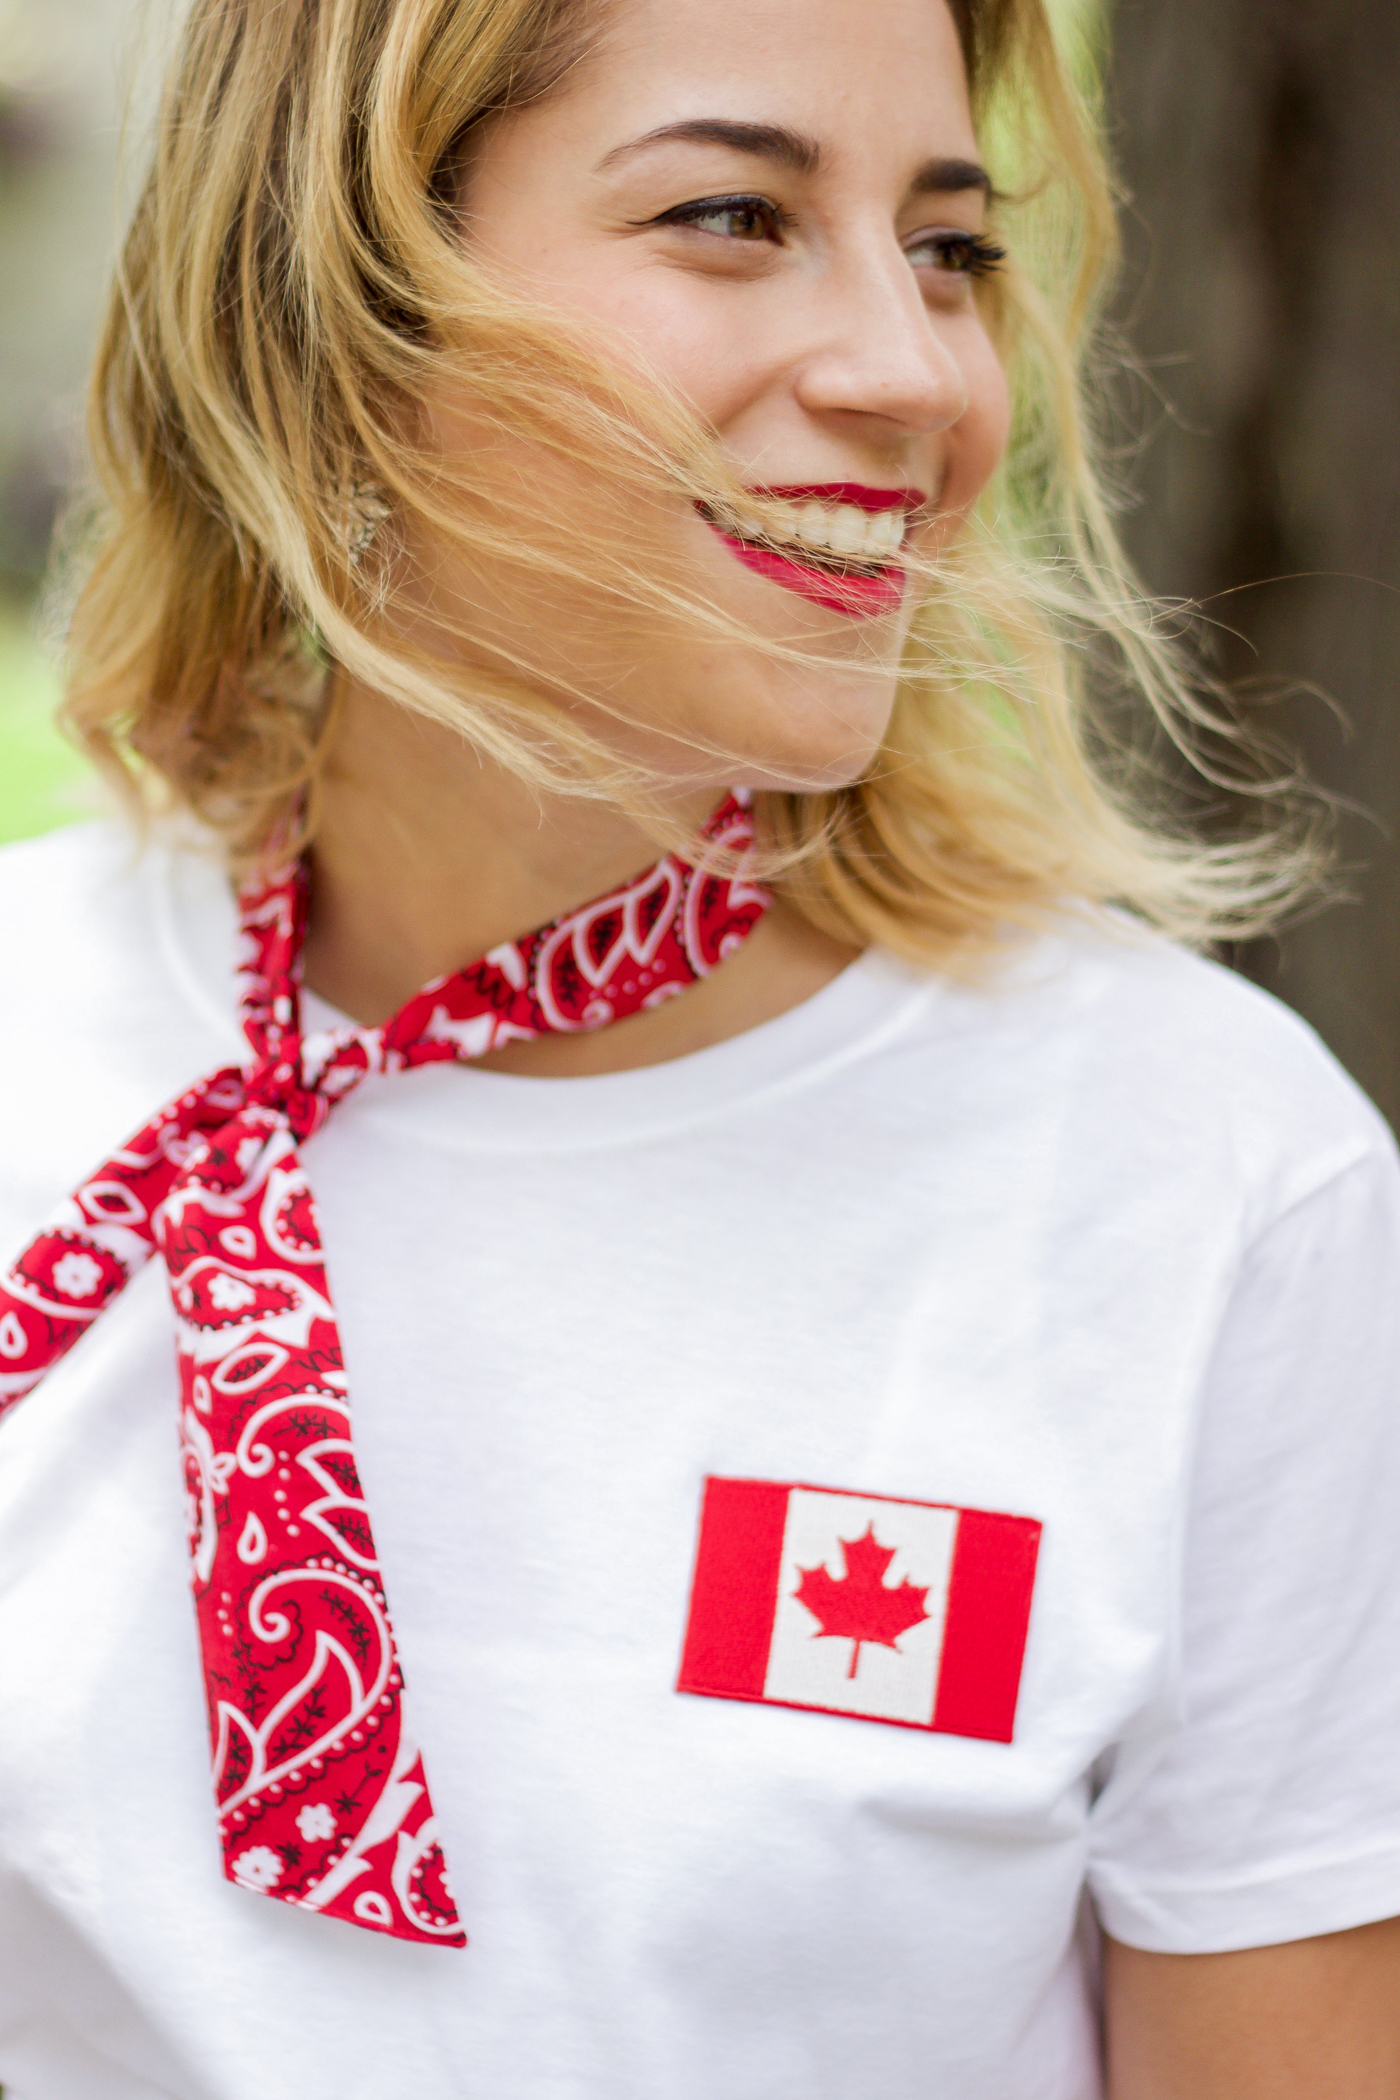 Canadian fashion blogger Jackie Goldhar is sharing some Canada 150 Canada Day outfit ideas